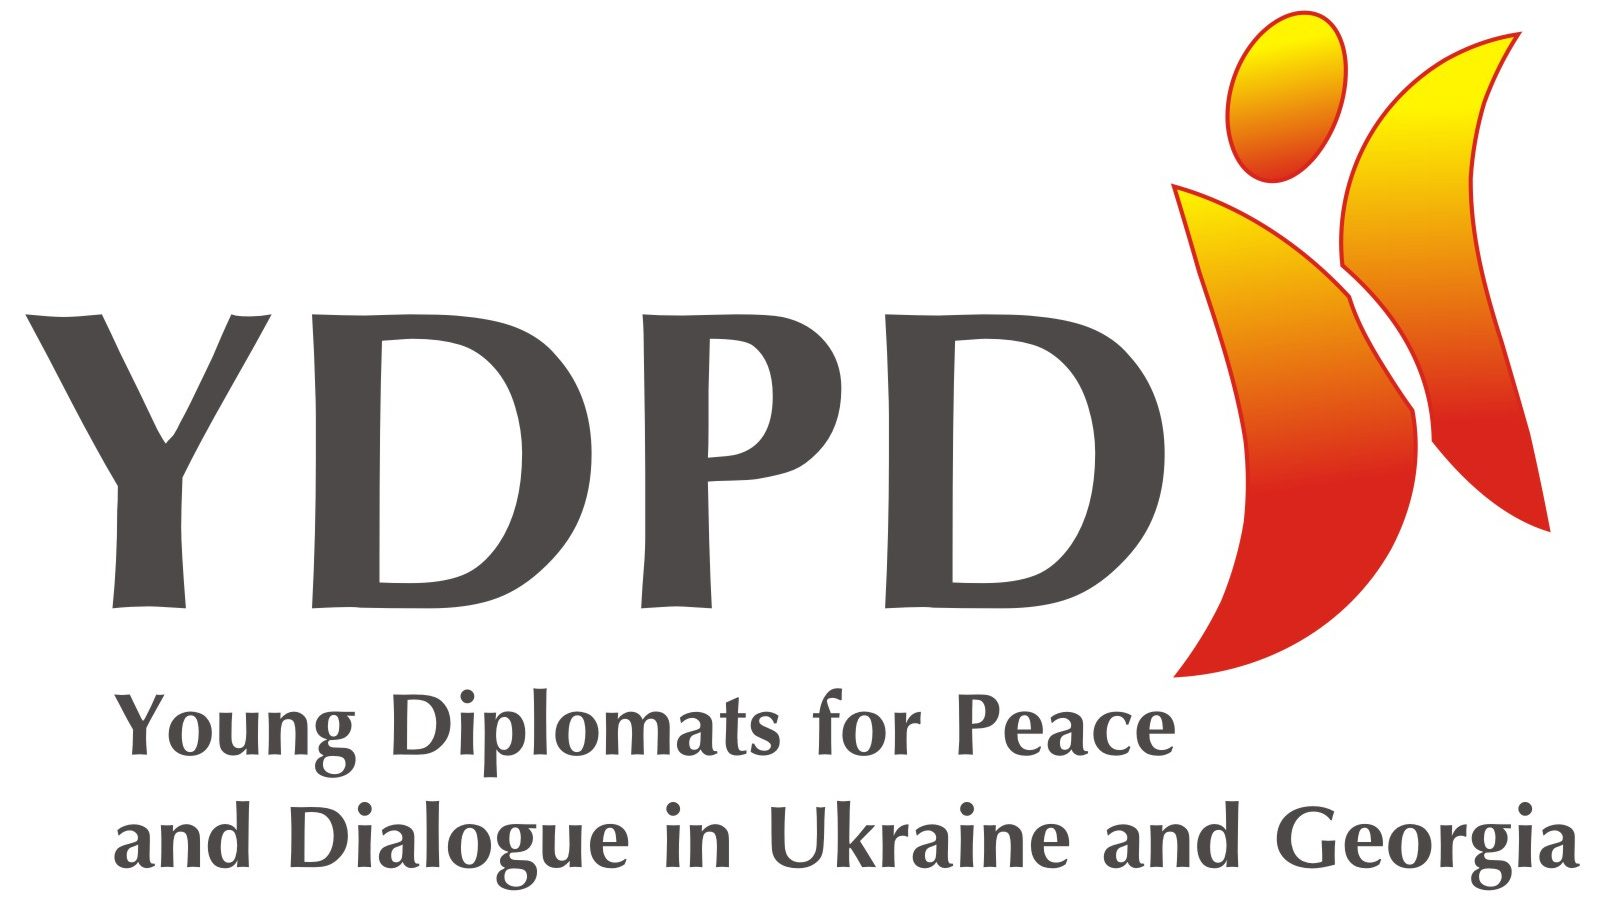 Young Diplomats for Peace